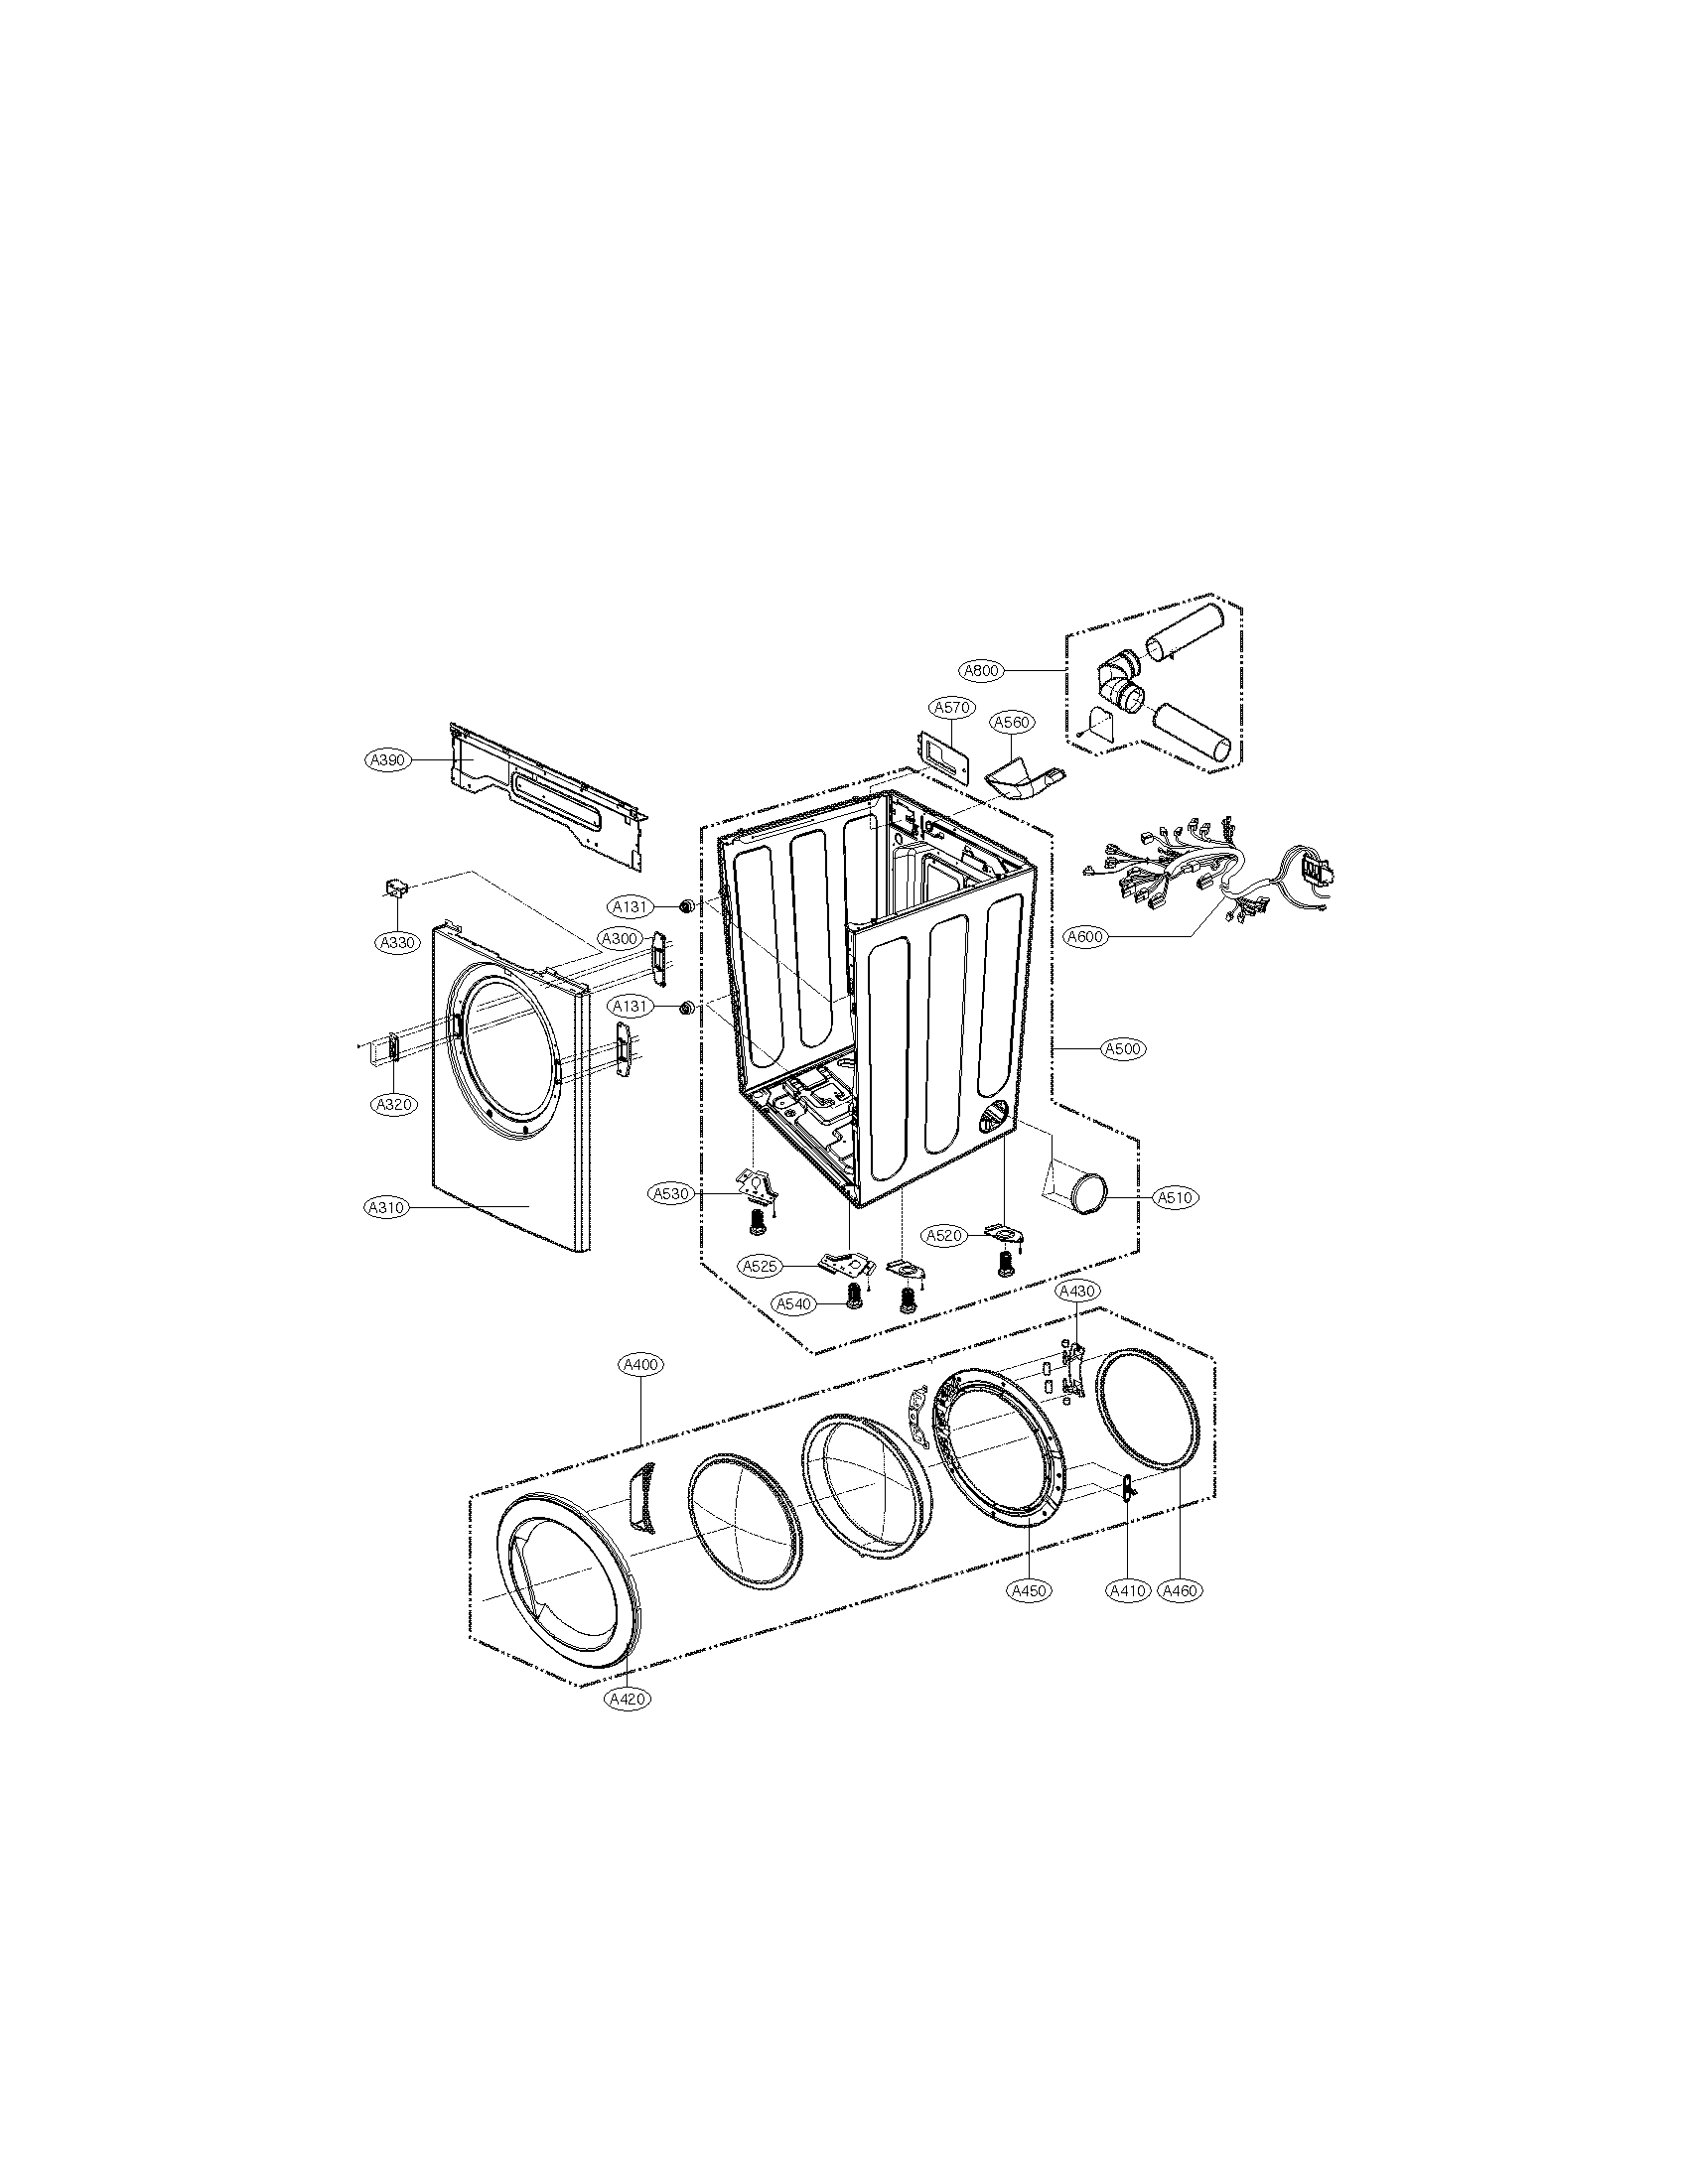 Lg model DLE1310W residential dryer genuine parts